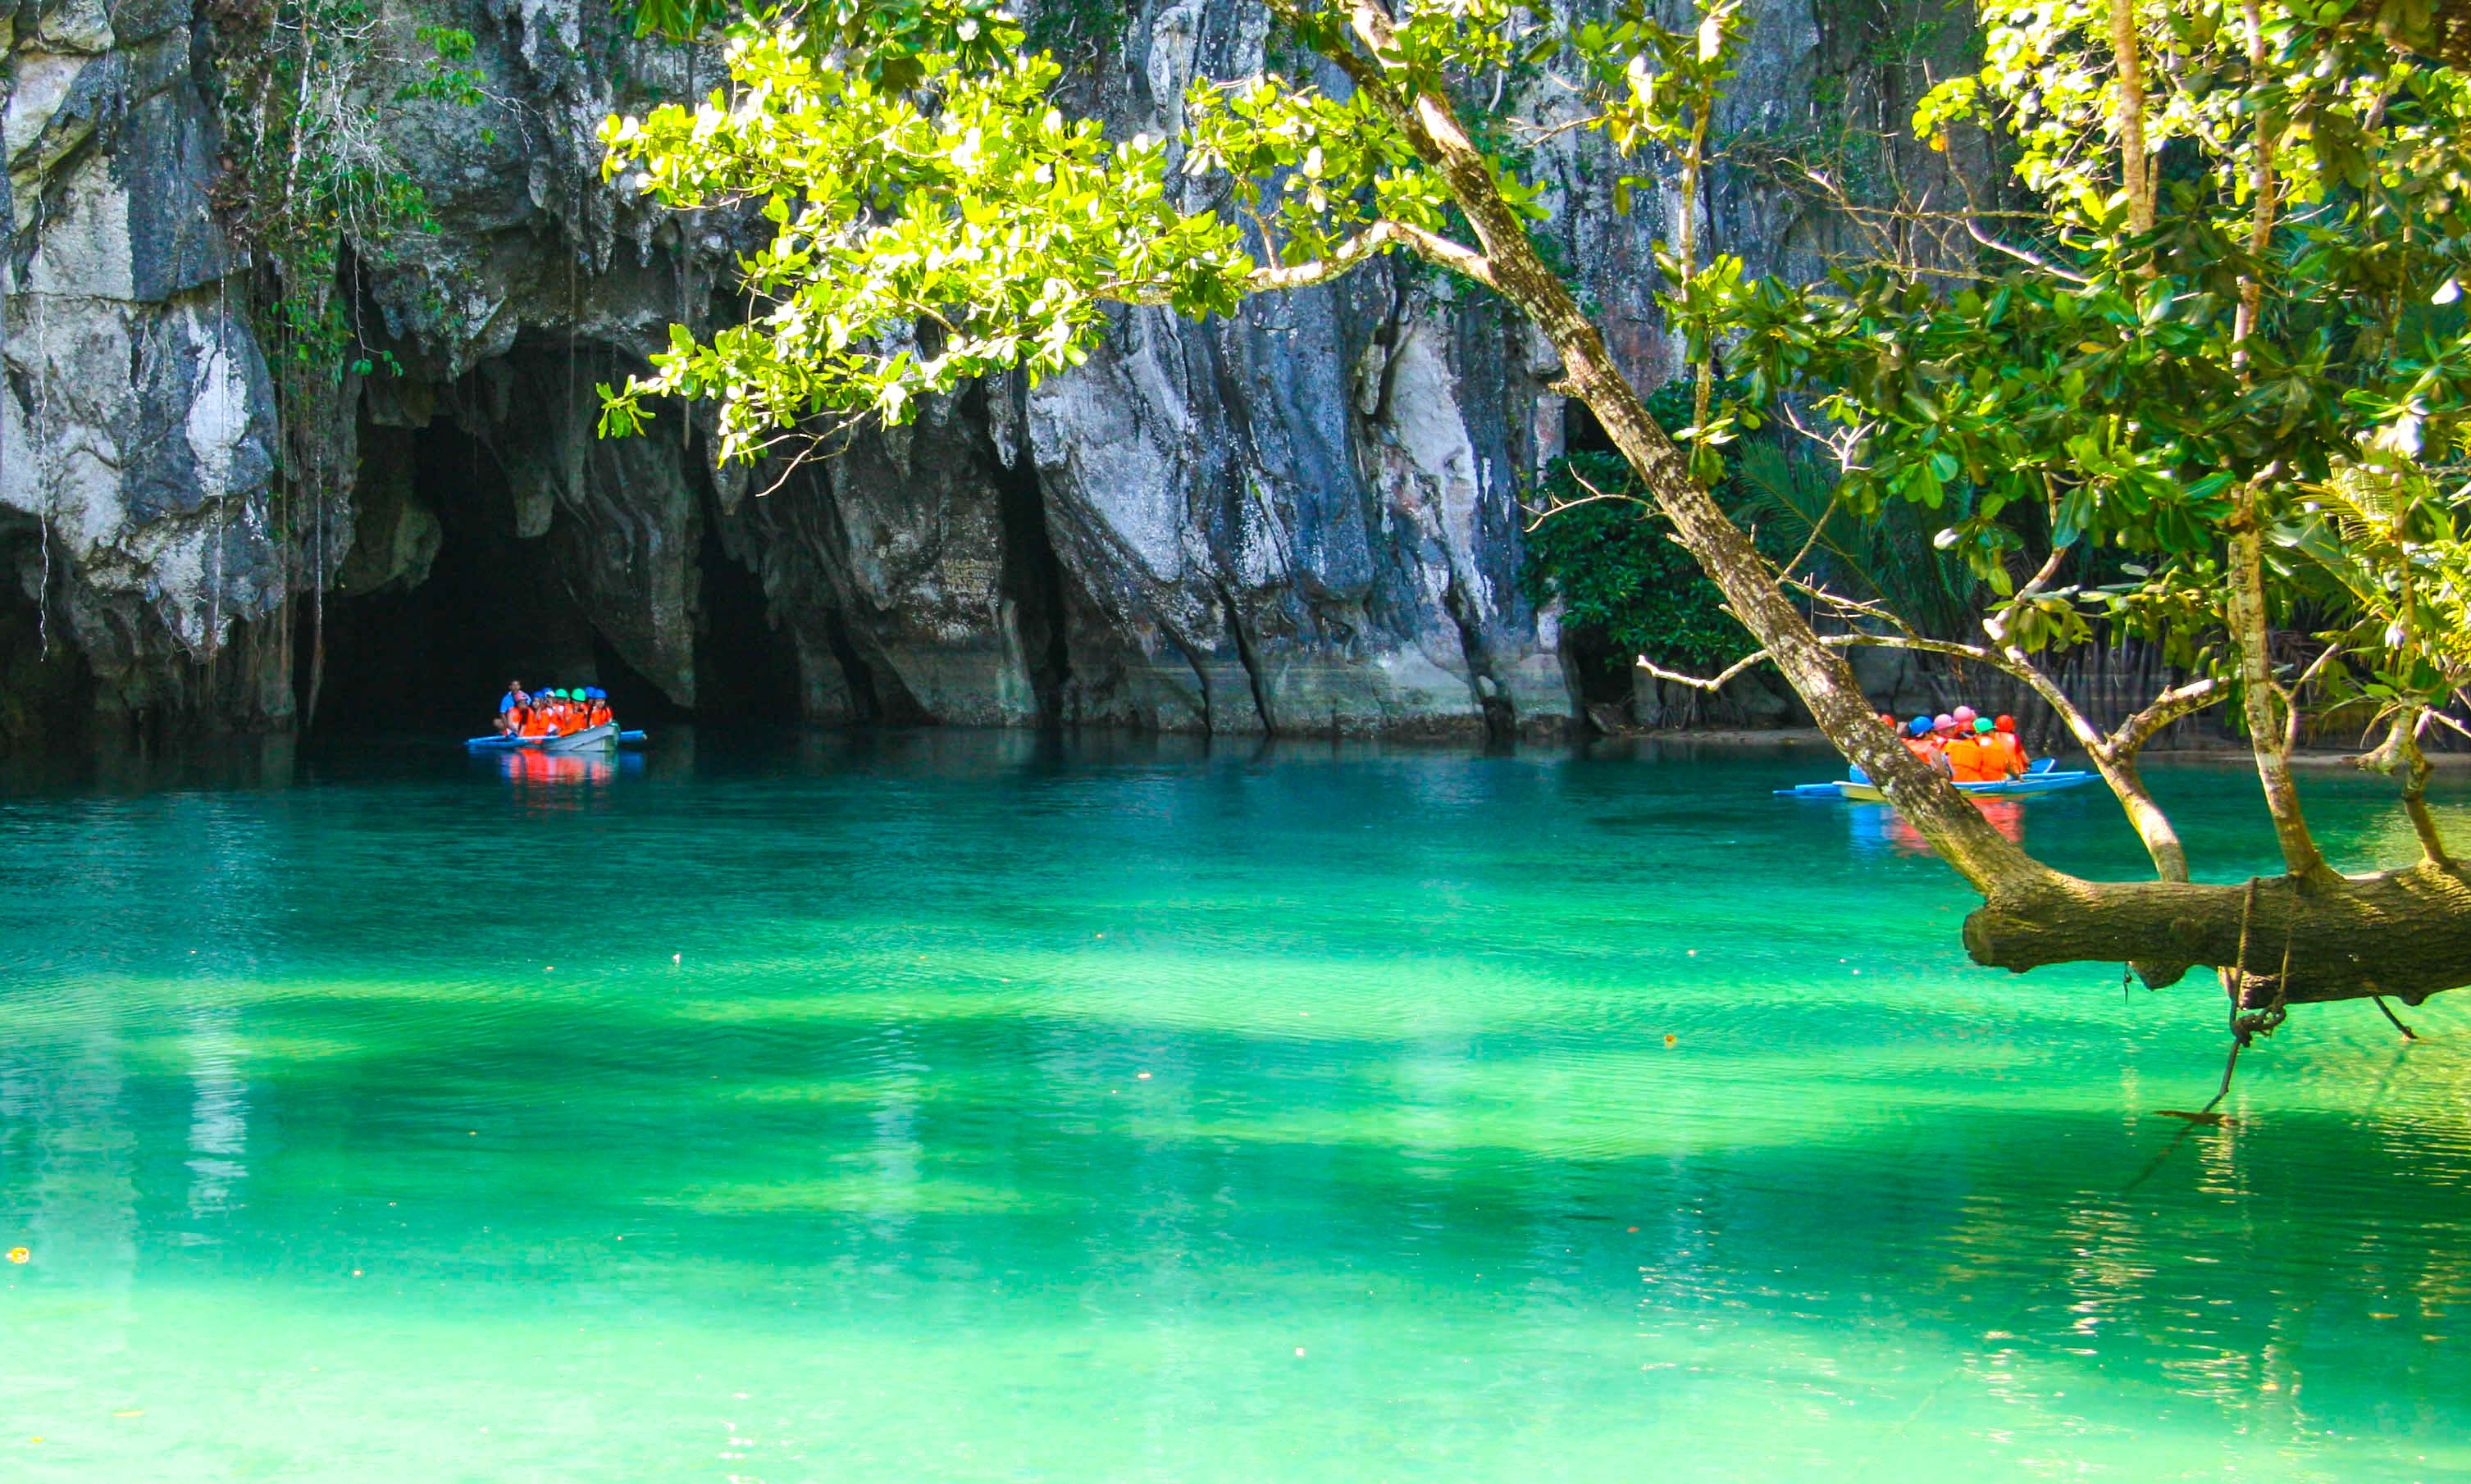 River with turquoise and green waters flows out of a cavern delved on the side of sheer limestone cliffs overhung with verdure in Puerto Princesa Underground River, one of the most amazing places to visit in the Philippines